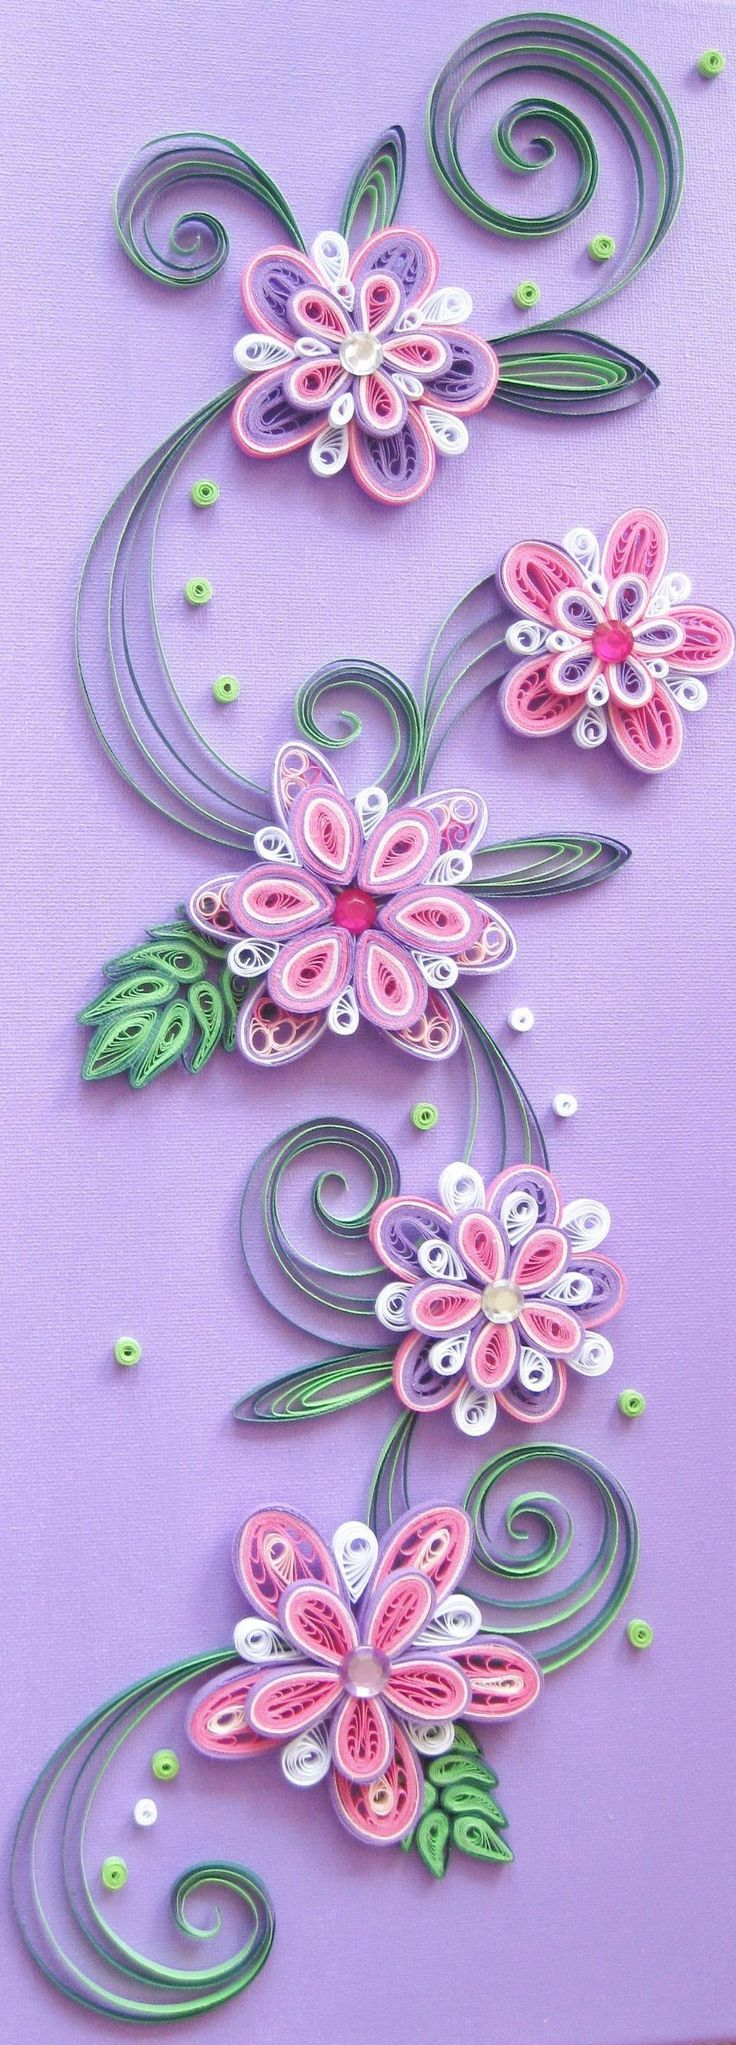 807 best quilling and paper sculpture images on pinterest for Paper quilling designs